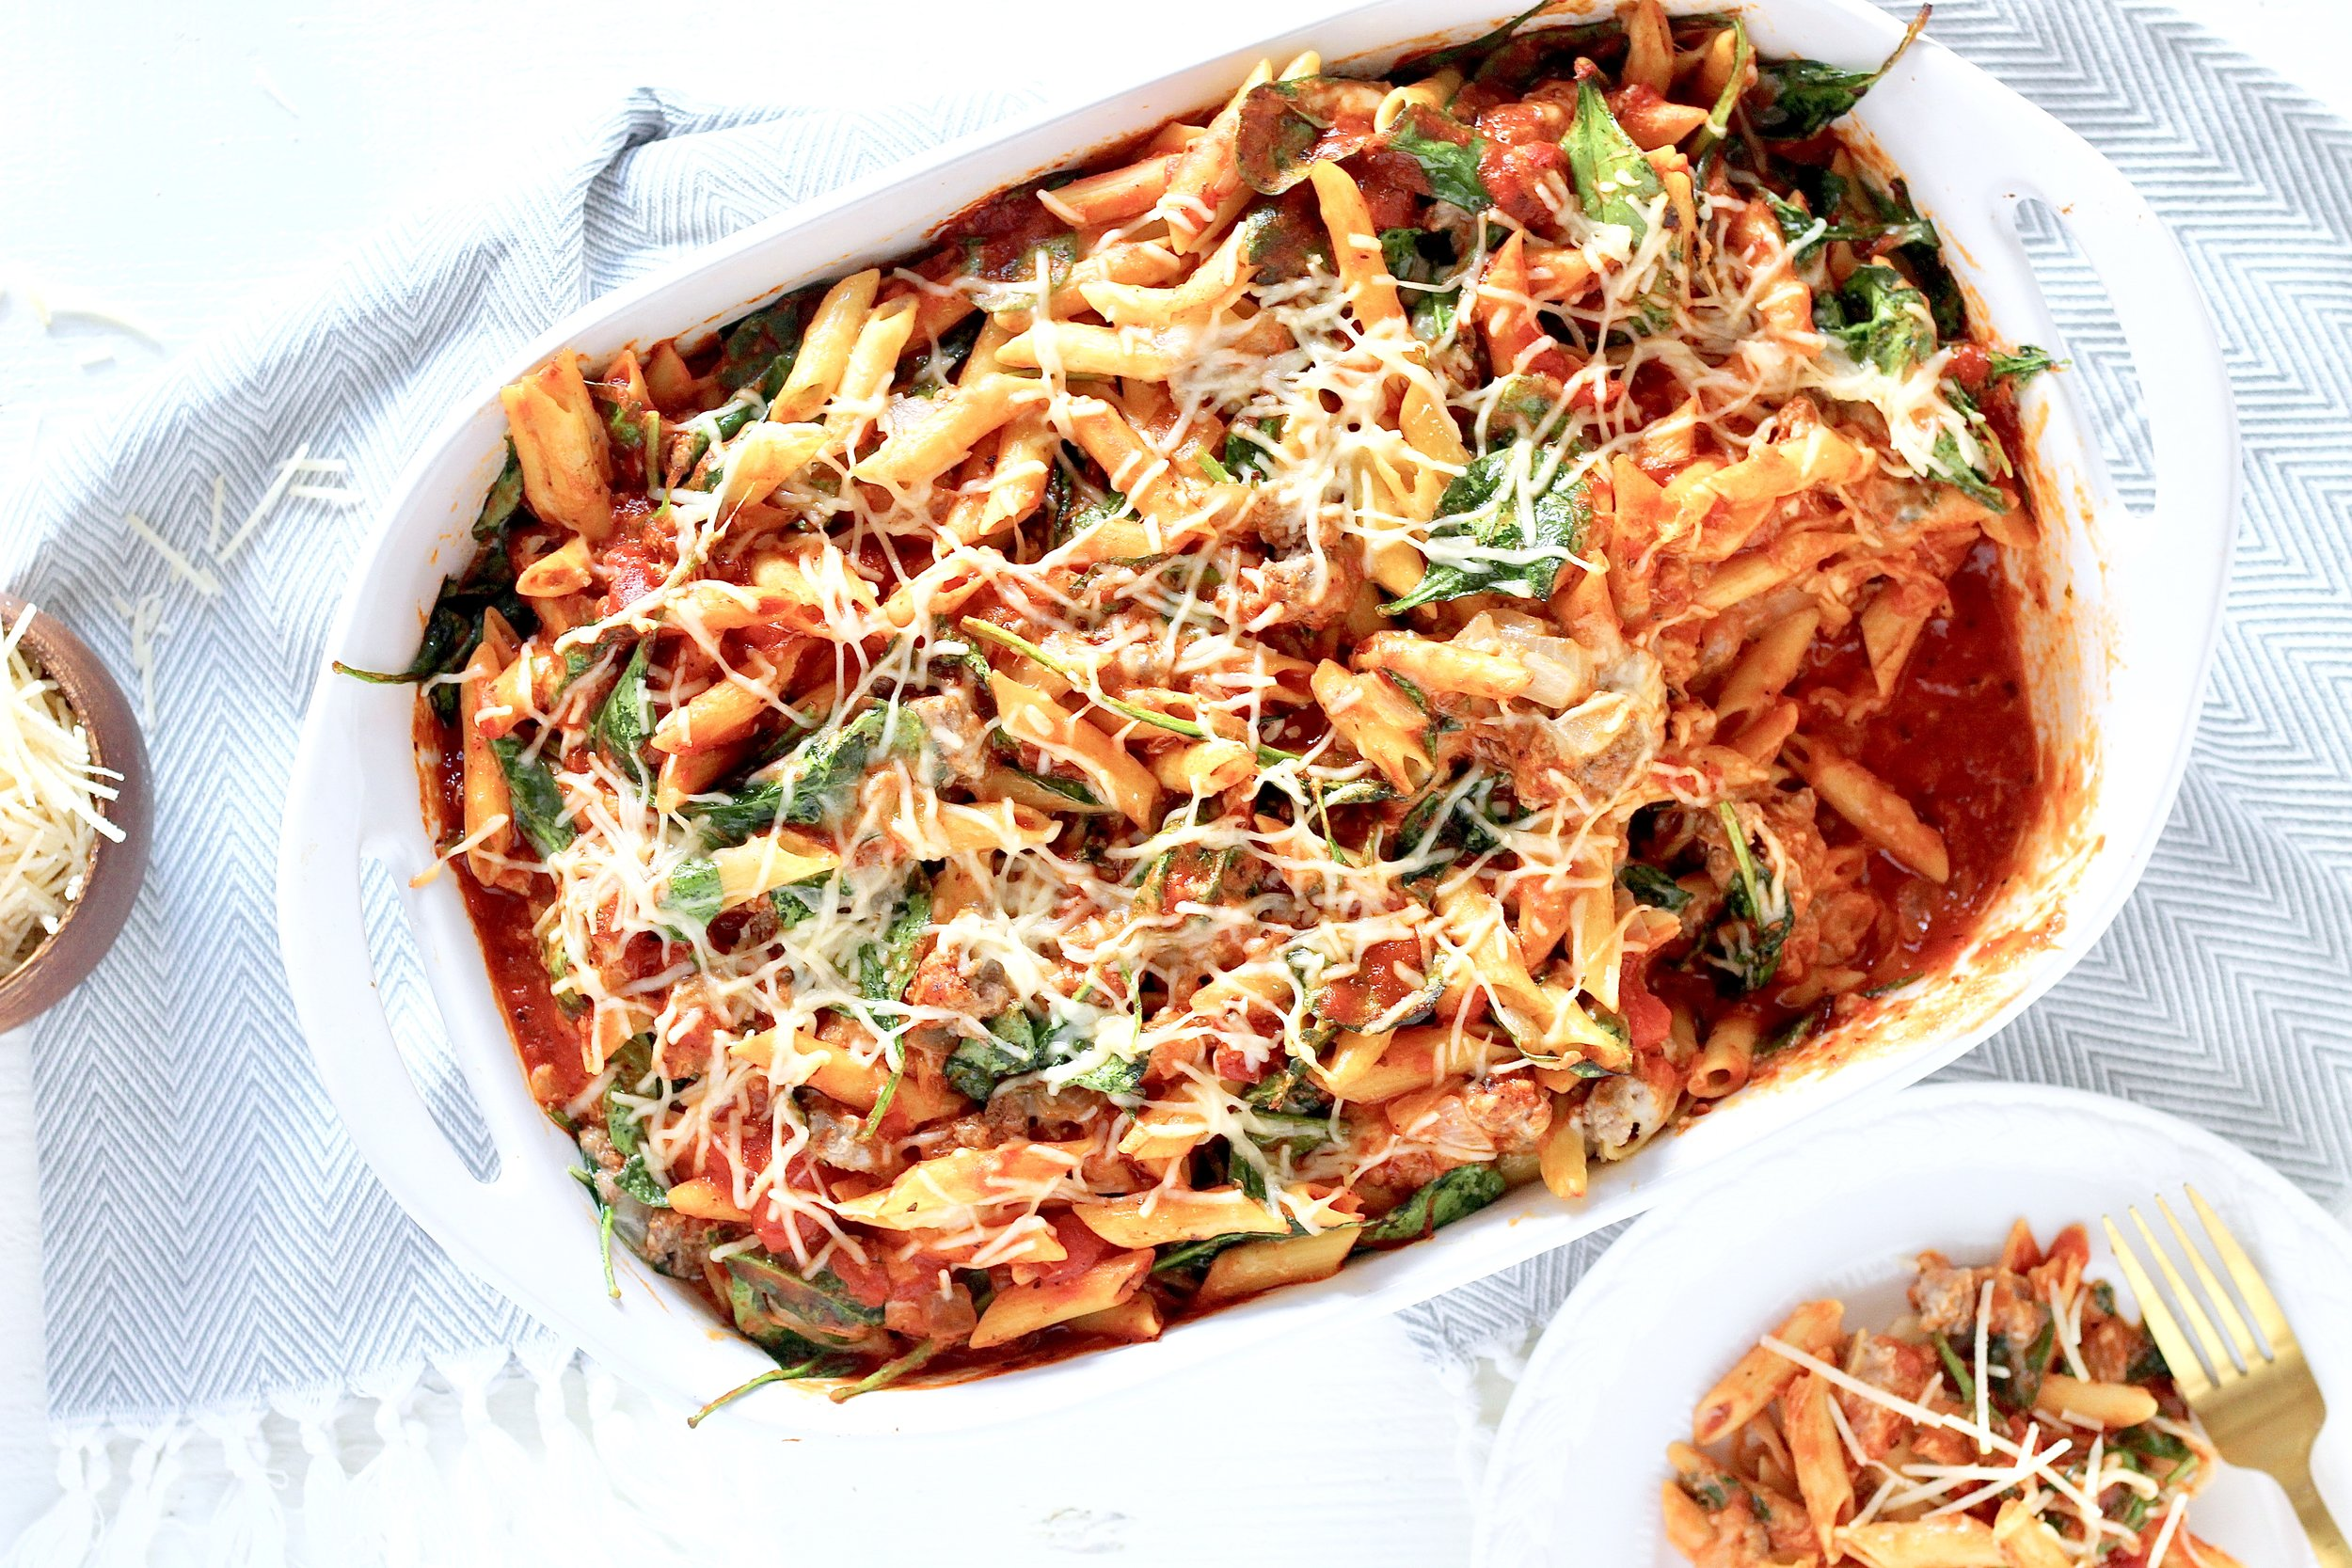 Cheesy Ground Lamb and Spinach Pasta Bake